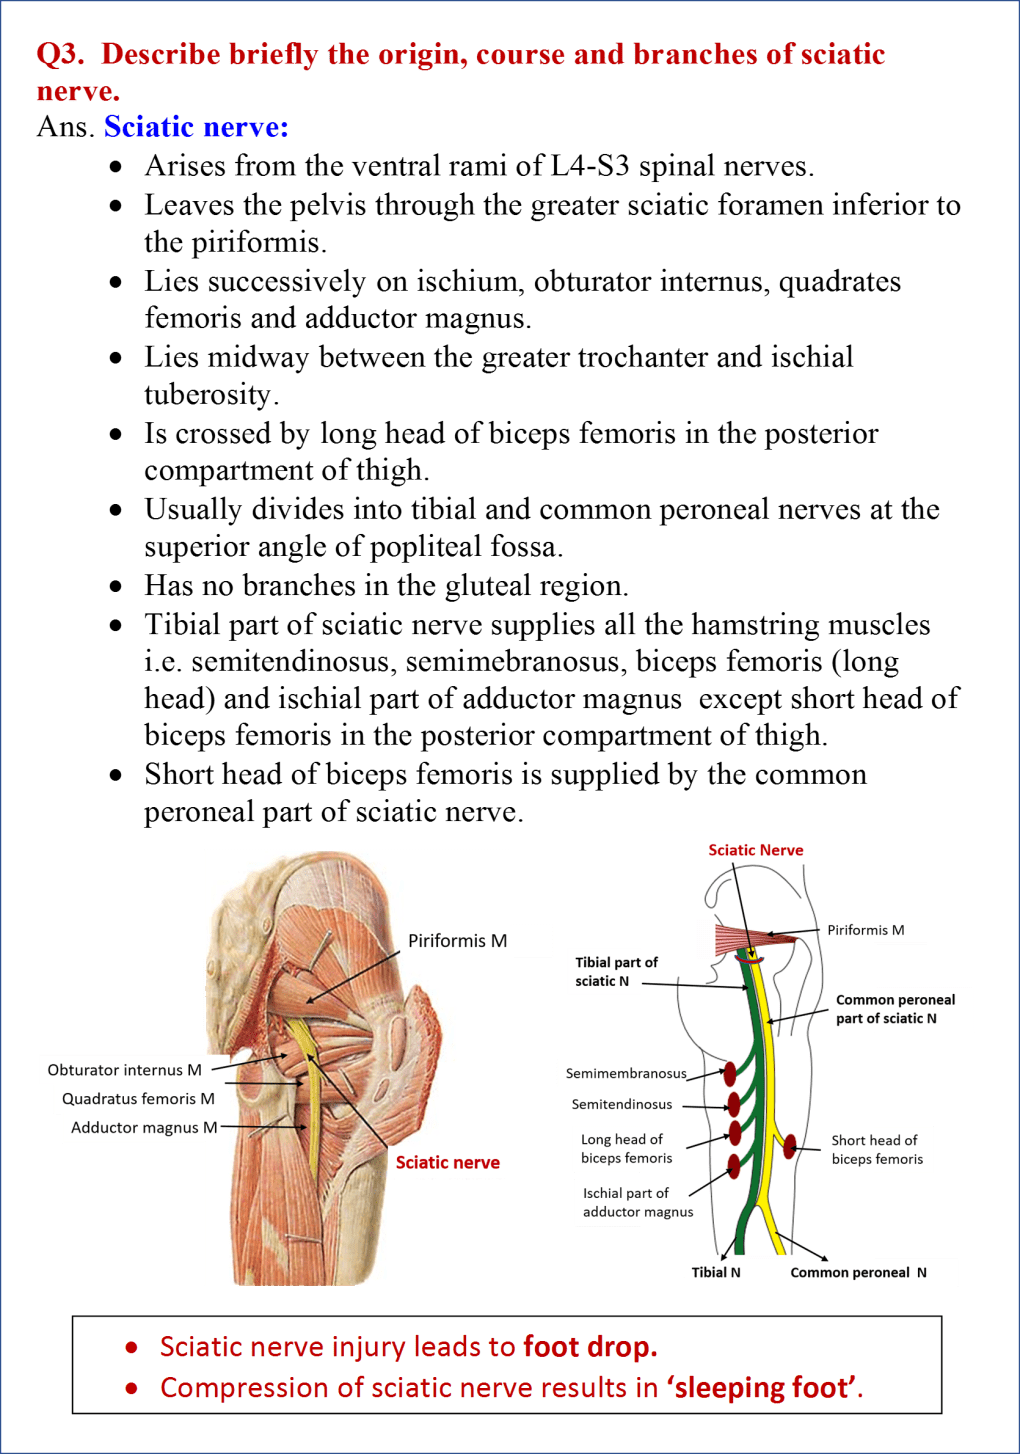 Gluteal region anatomy qa sciatic nerve root value course branches and muscles supplied altavistaventures Choice Image